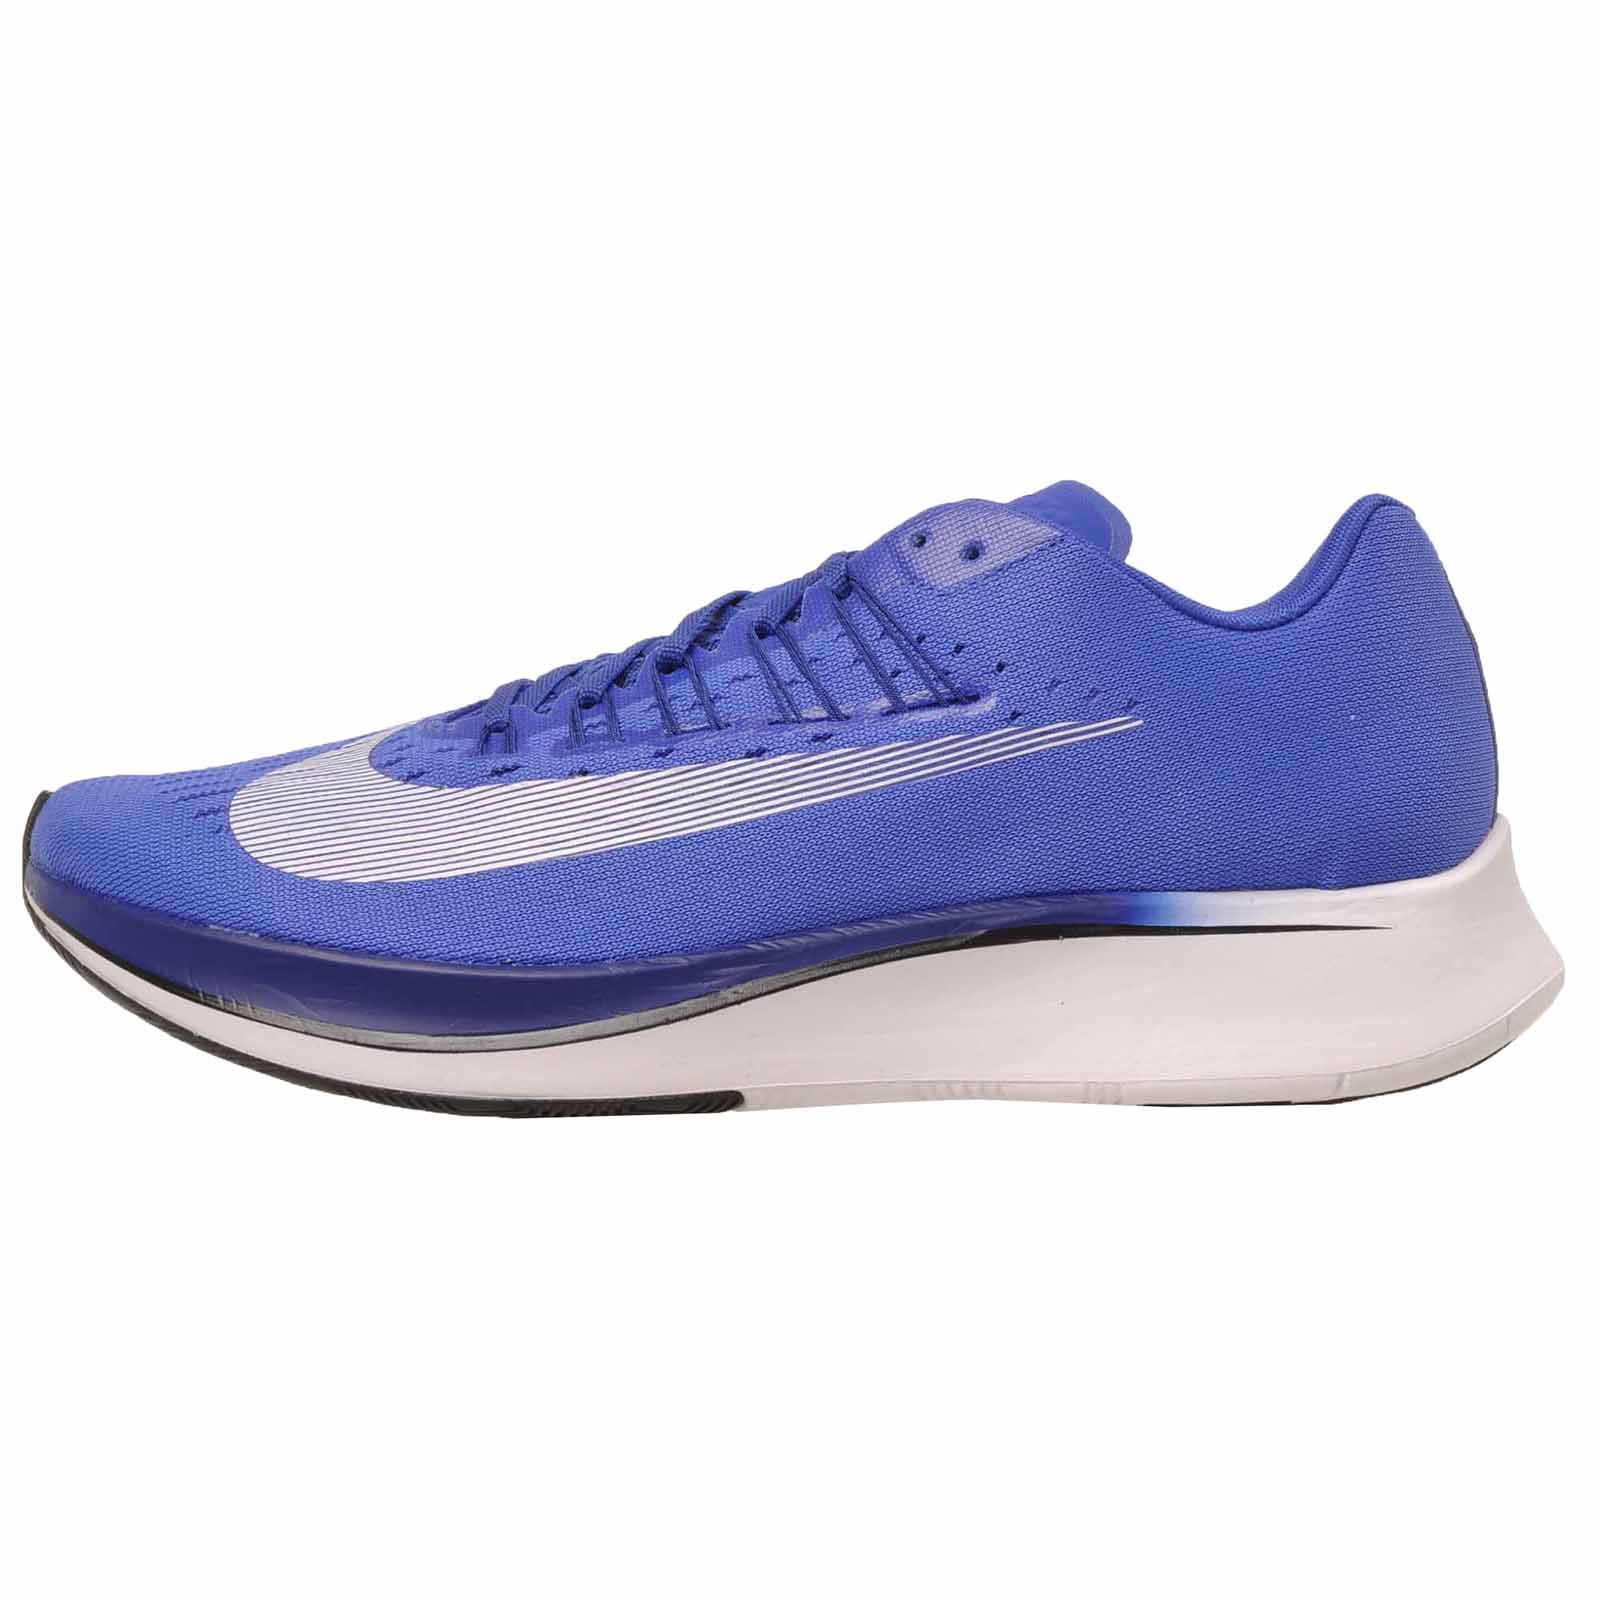 db2cf4a284b1 Details about Nike Zoom Fly Running Mens Shoes Royal Blue White 880848-411